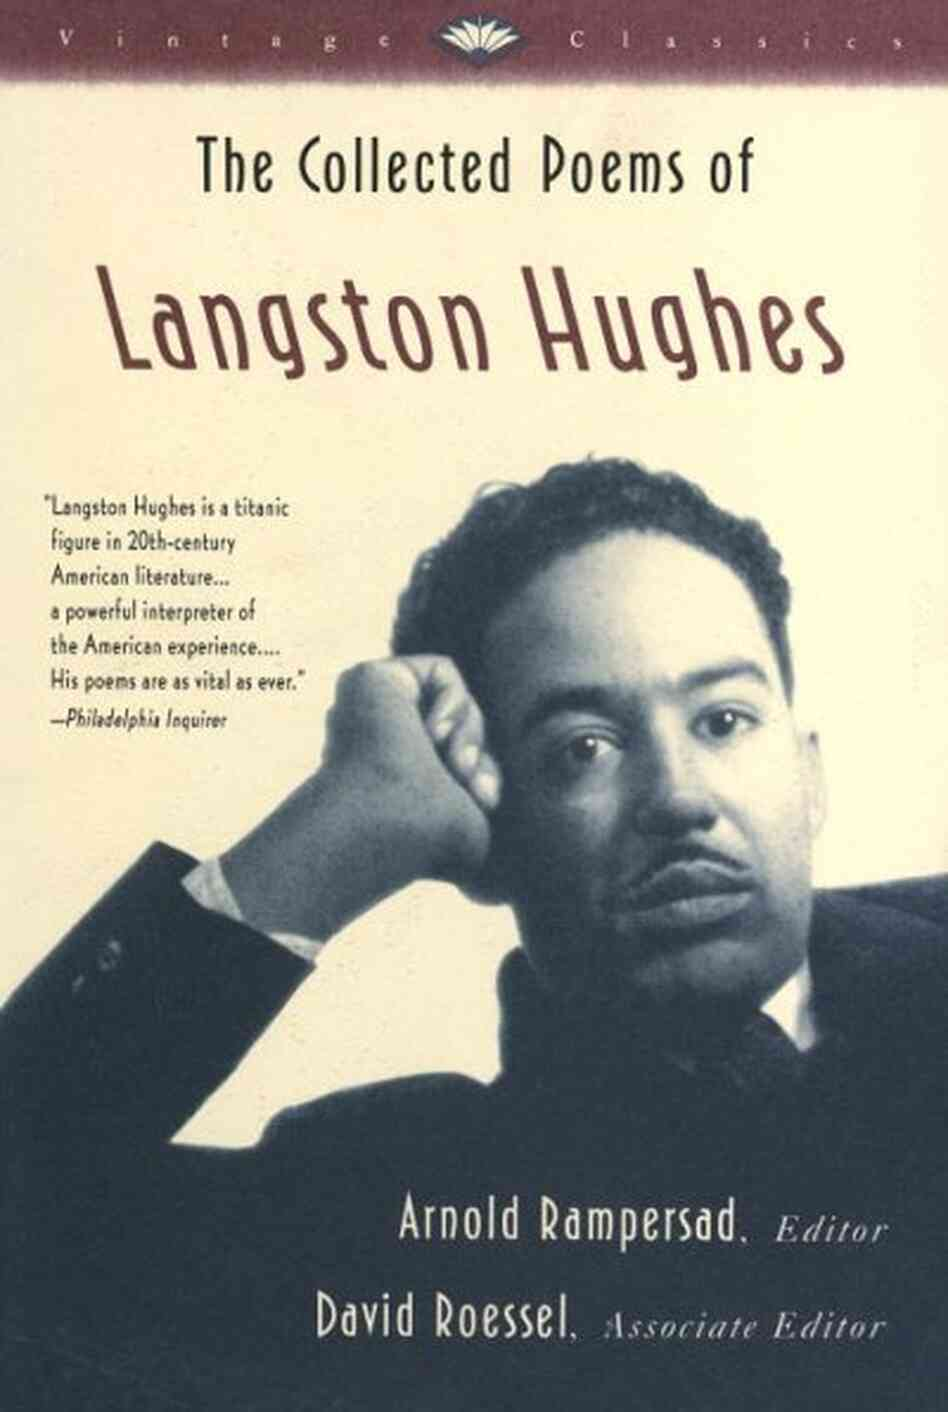 the life and works of literature by langston hughes Due to an unstable early life, his childhood was not a happy one but it  hughes  achieved fame as a literary luminary during the harlem.